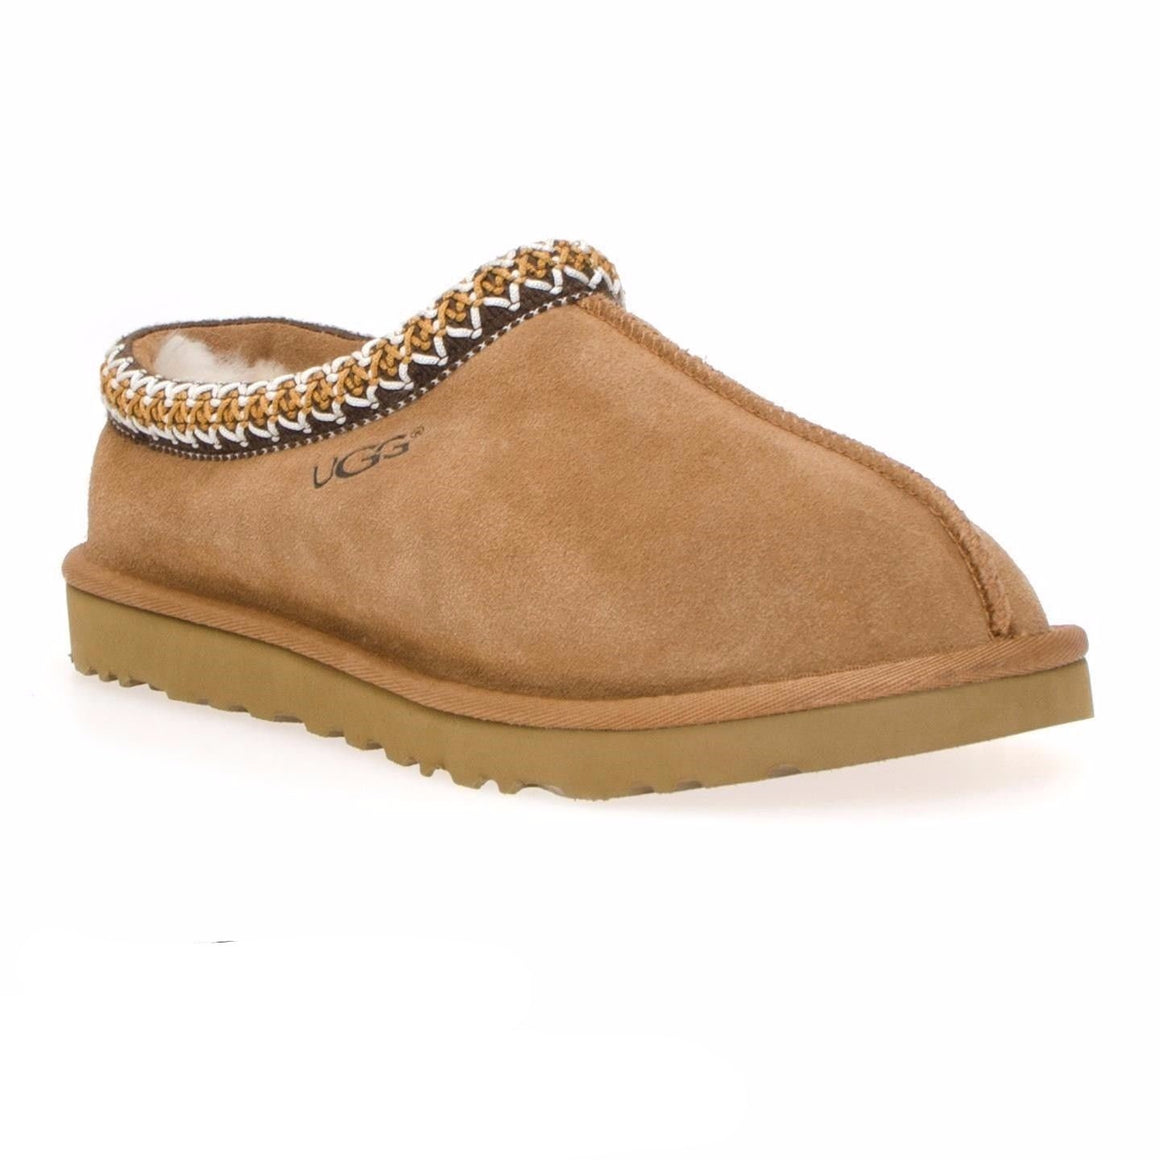 UGG Tasman Chestnut Slippers - Men's